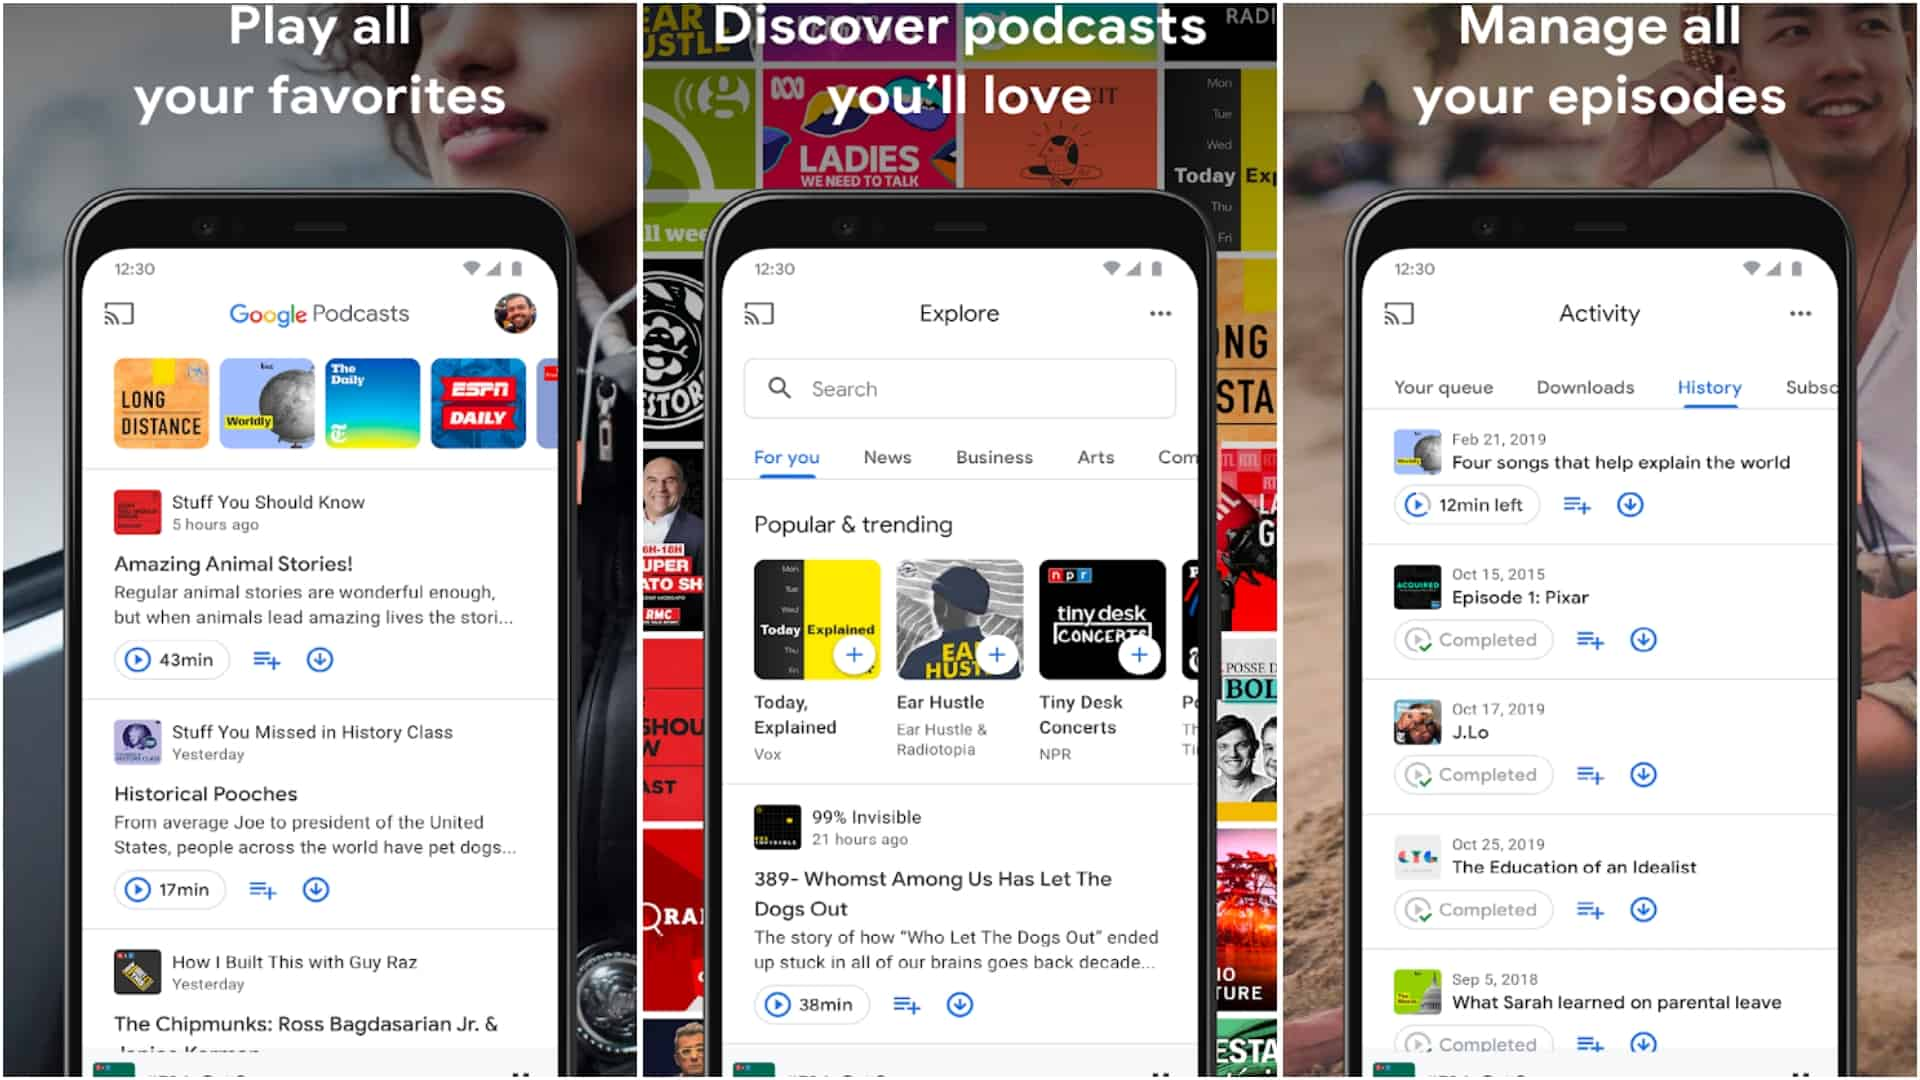 Google Podcasts app image April 2020